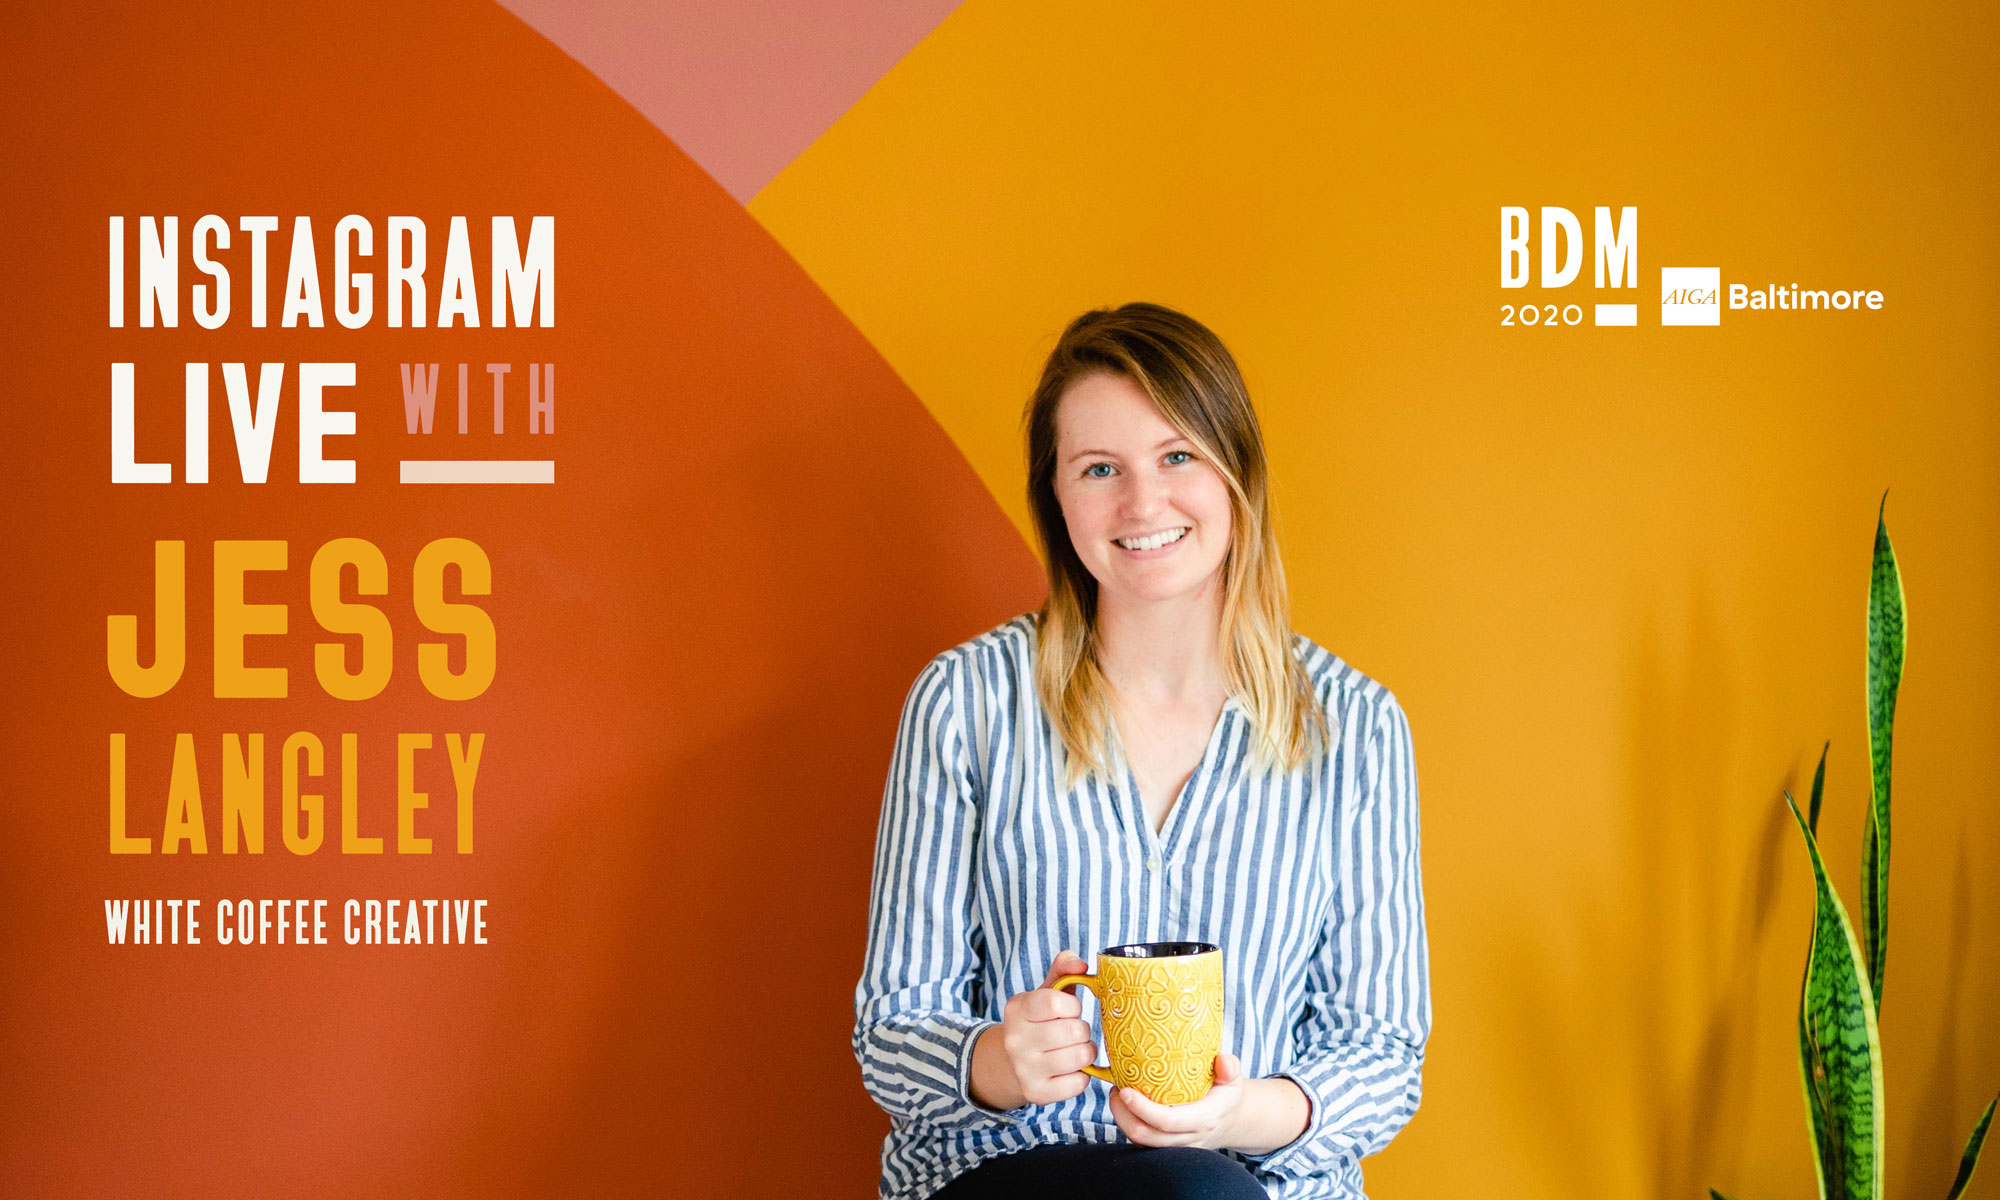 Instagram Live with Jess Langley of White Coffee Creative